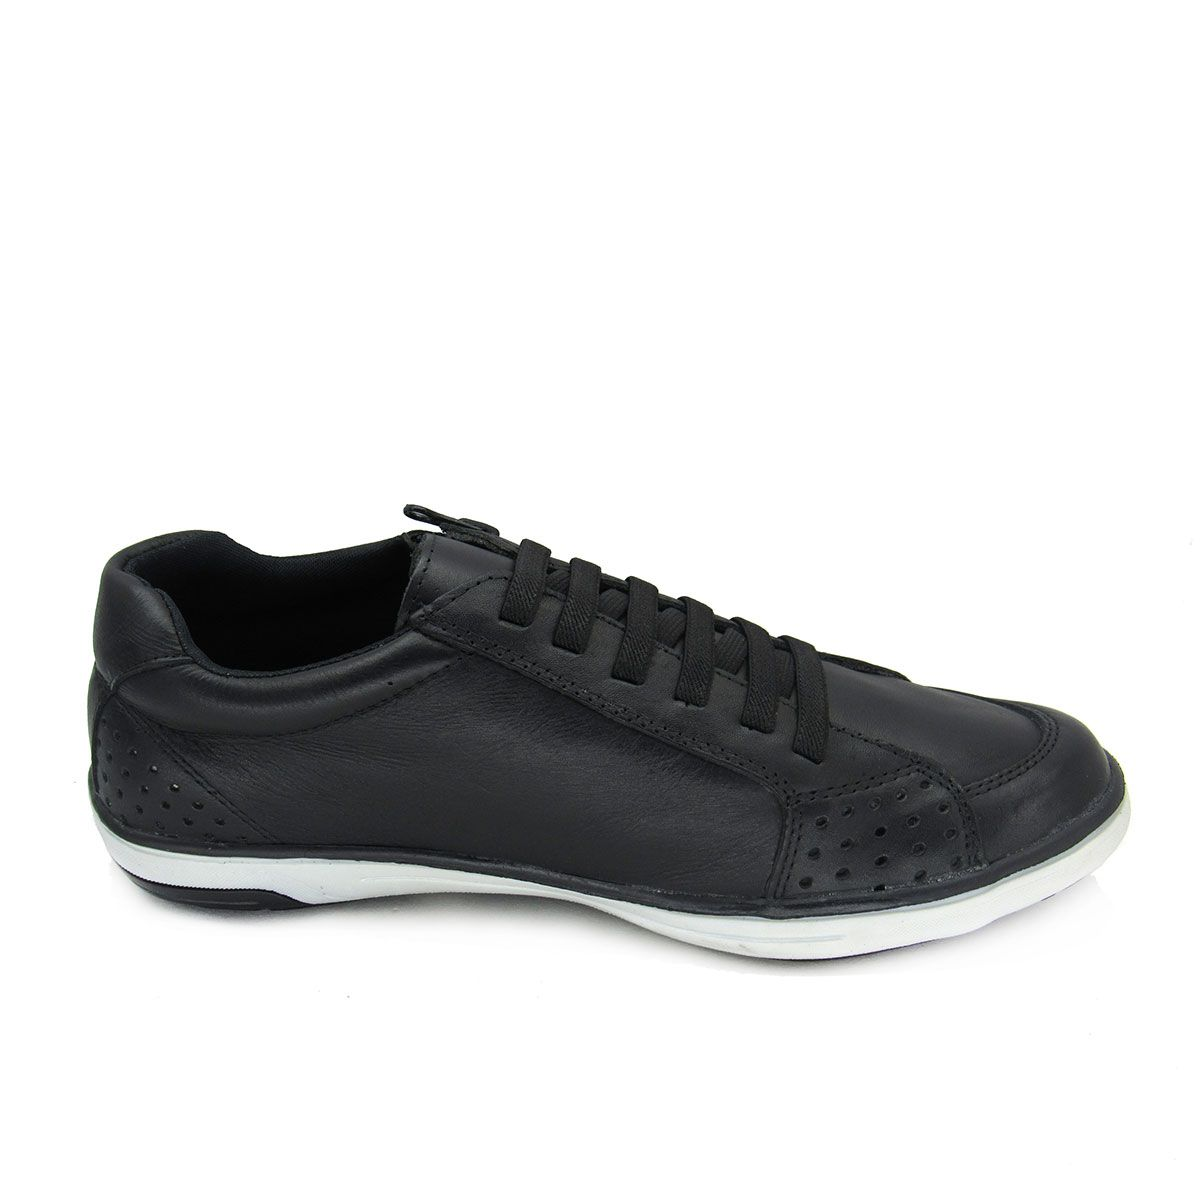 Sapatênis Masculino Couro Spell Shoes 321B Calce Fácil